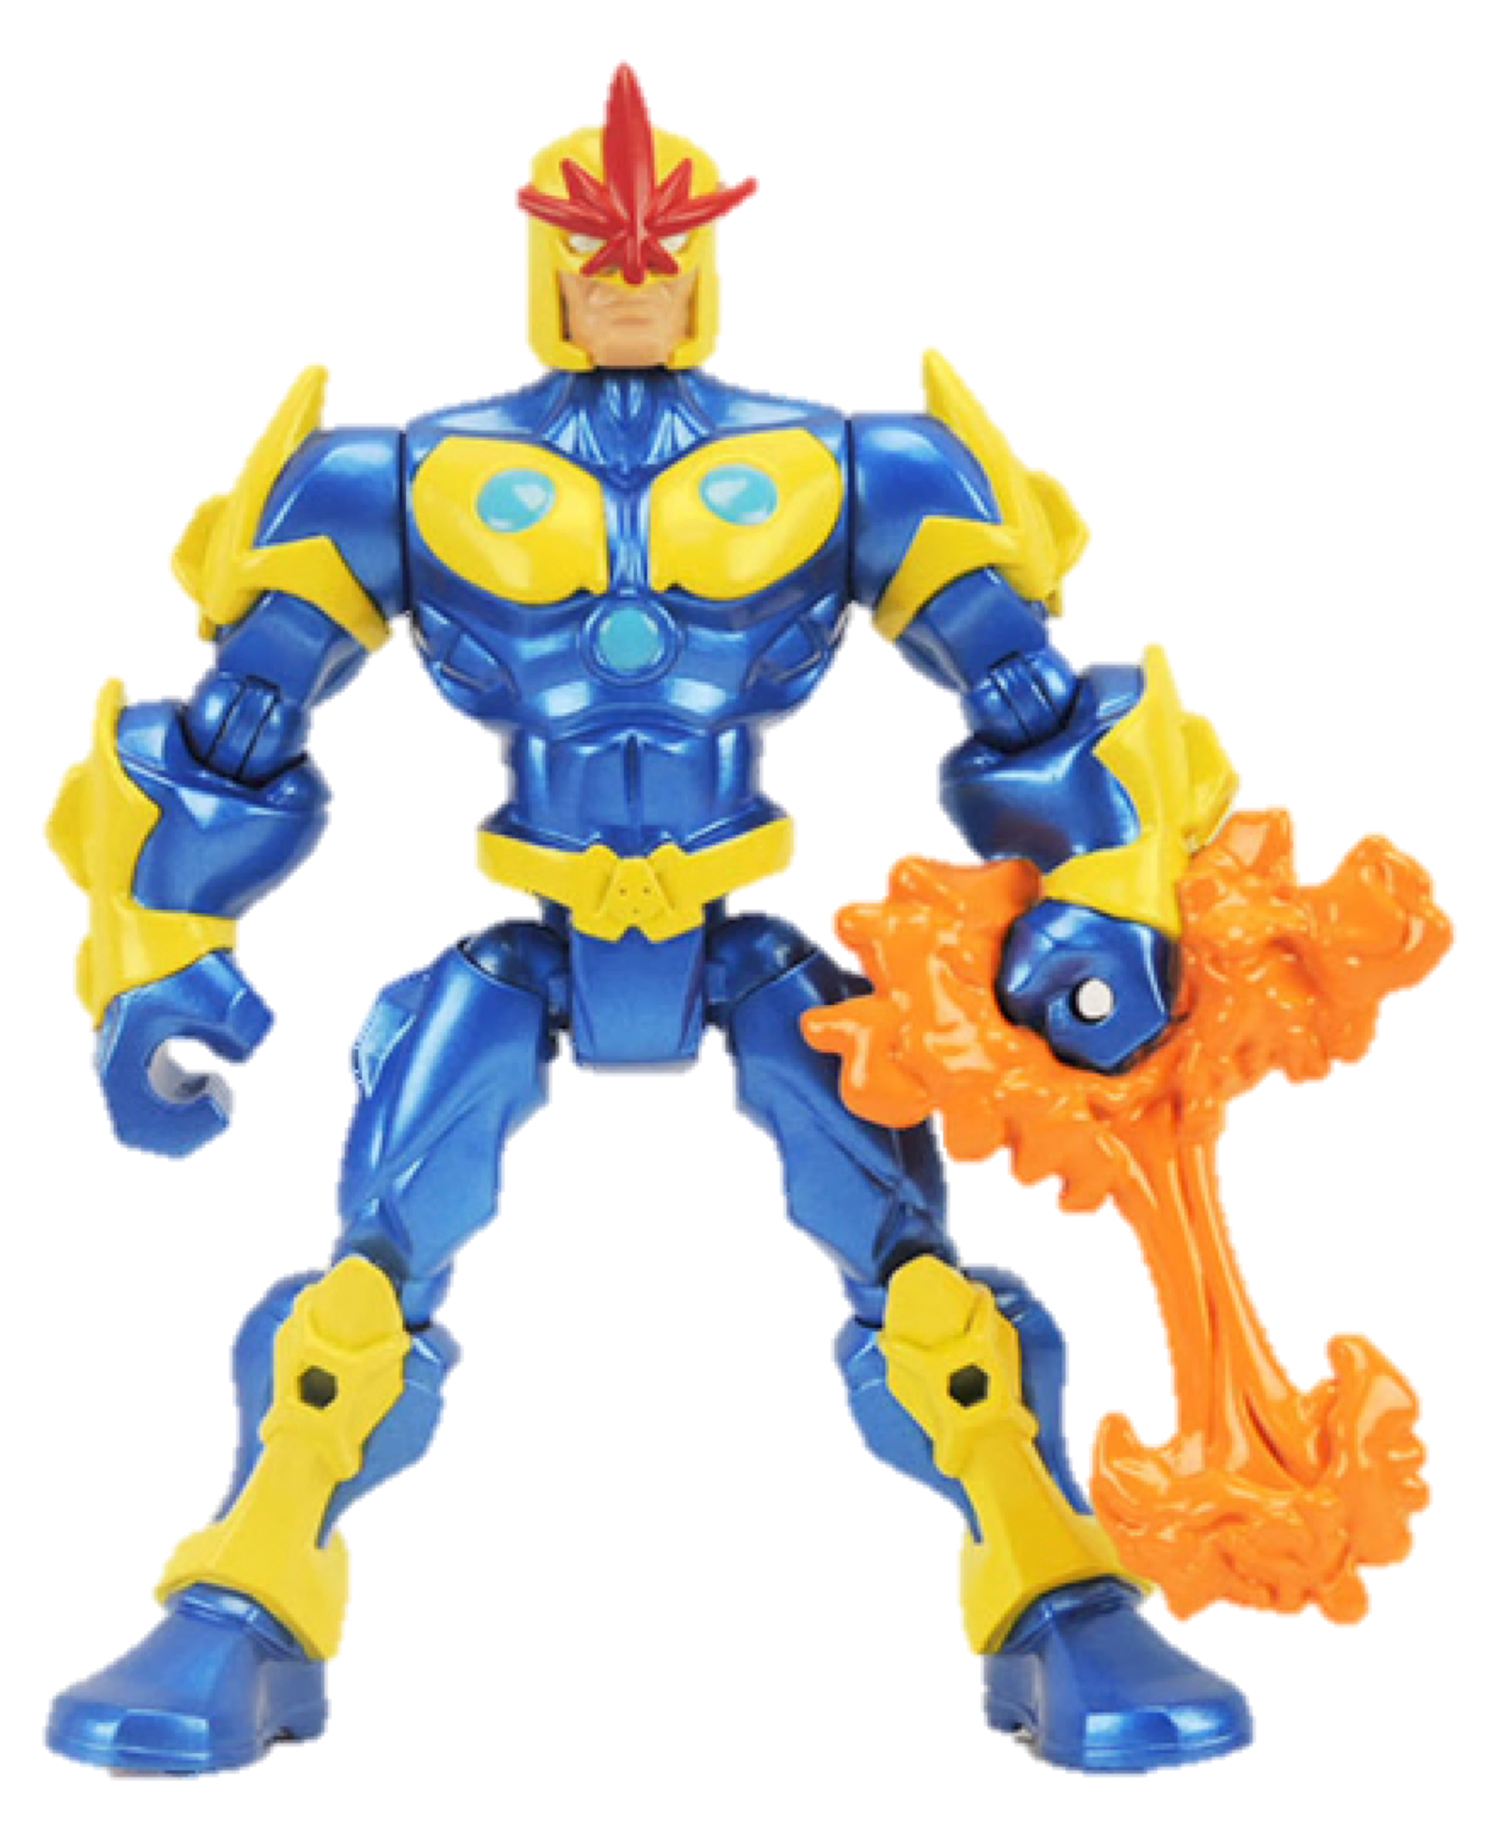 Marvel Malvorlagen Marvel Superhero The Marvel Super: Marvel Toys Marvel Super Hero Mashers Nova